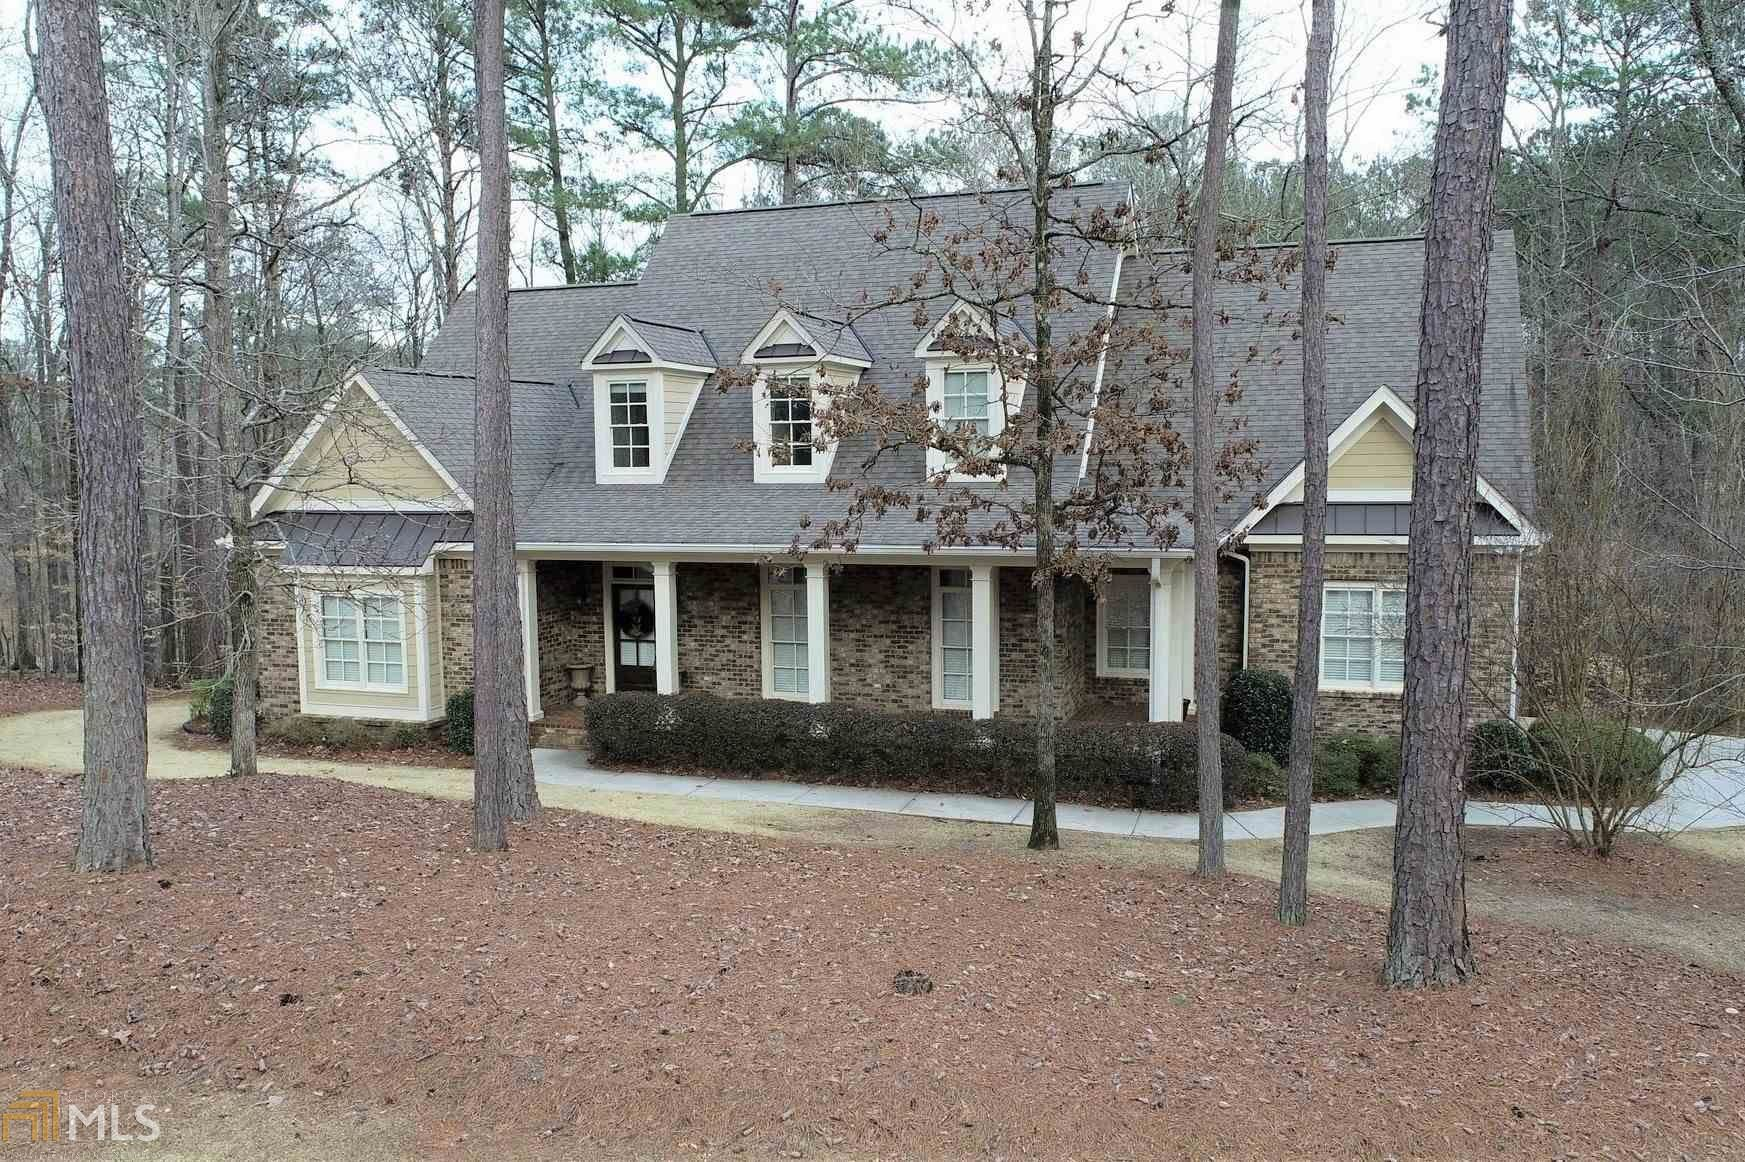 126 Morgan Dr, LaGrange, GA 30240 - #: 8722827